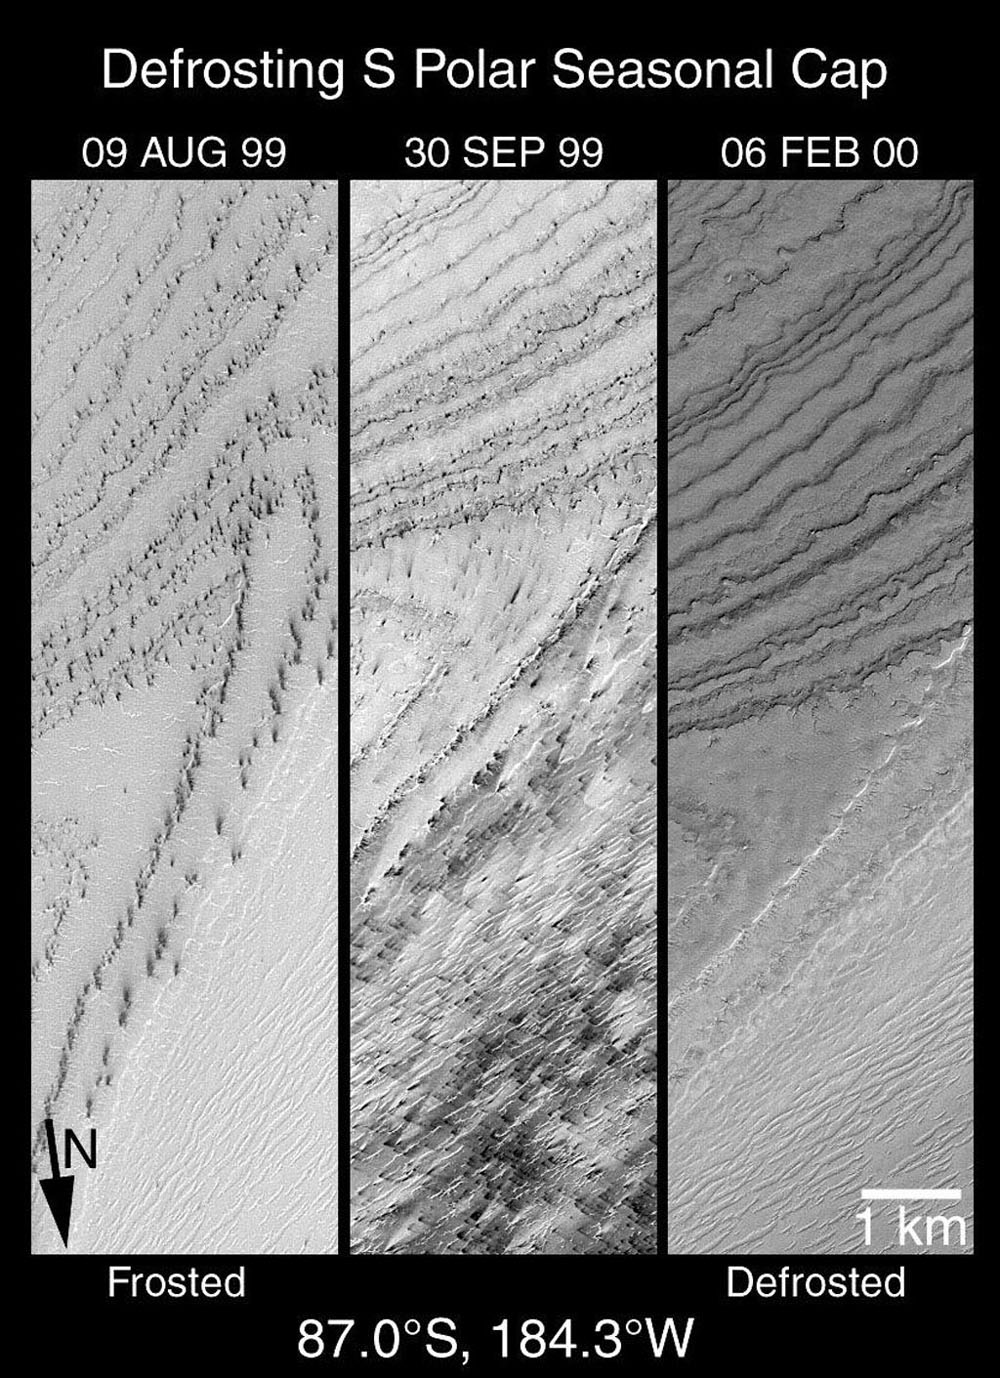 NASA's Mars Global Surveyor shows a layered terrain near the martian south pole. Together, these three views document changes that occurred between August 1999 and February 2000 for the same small region.